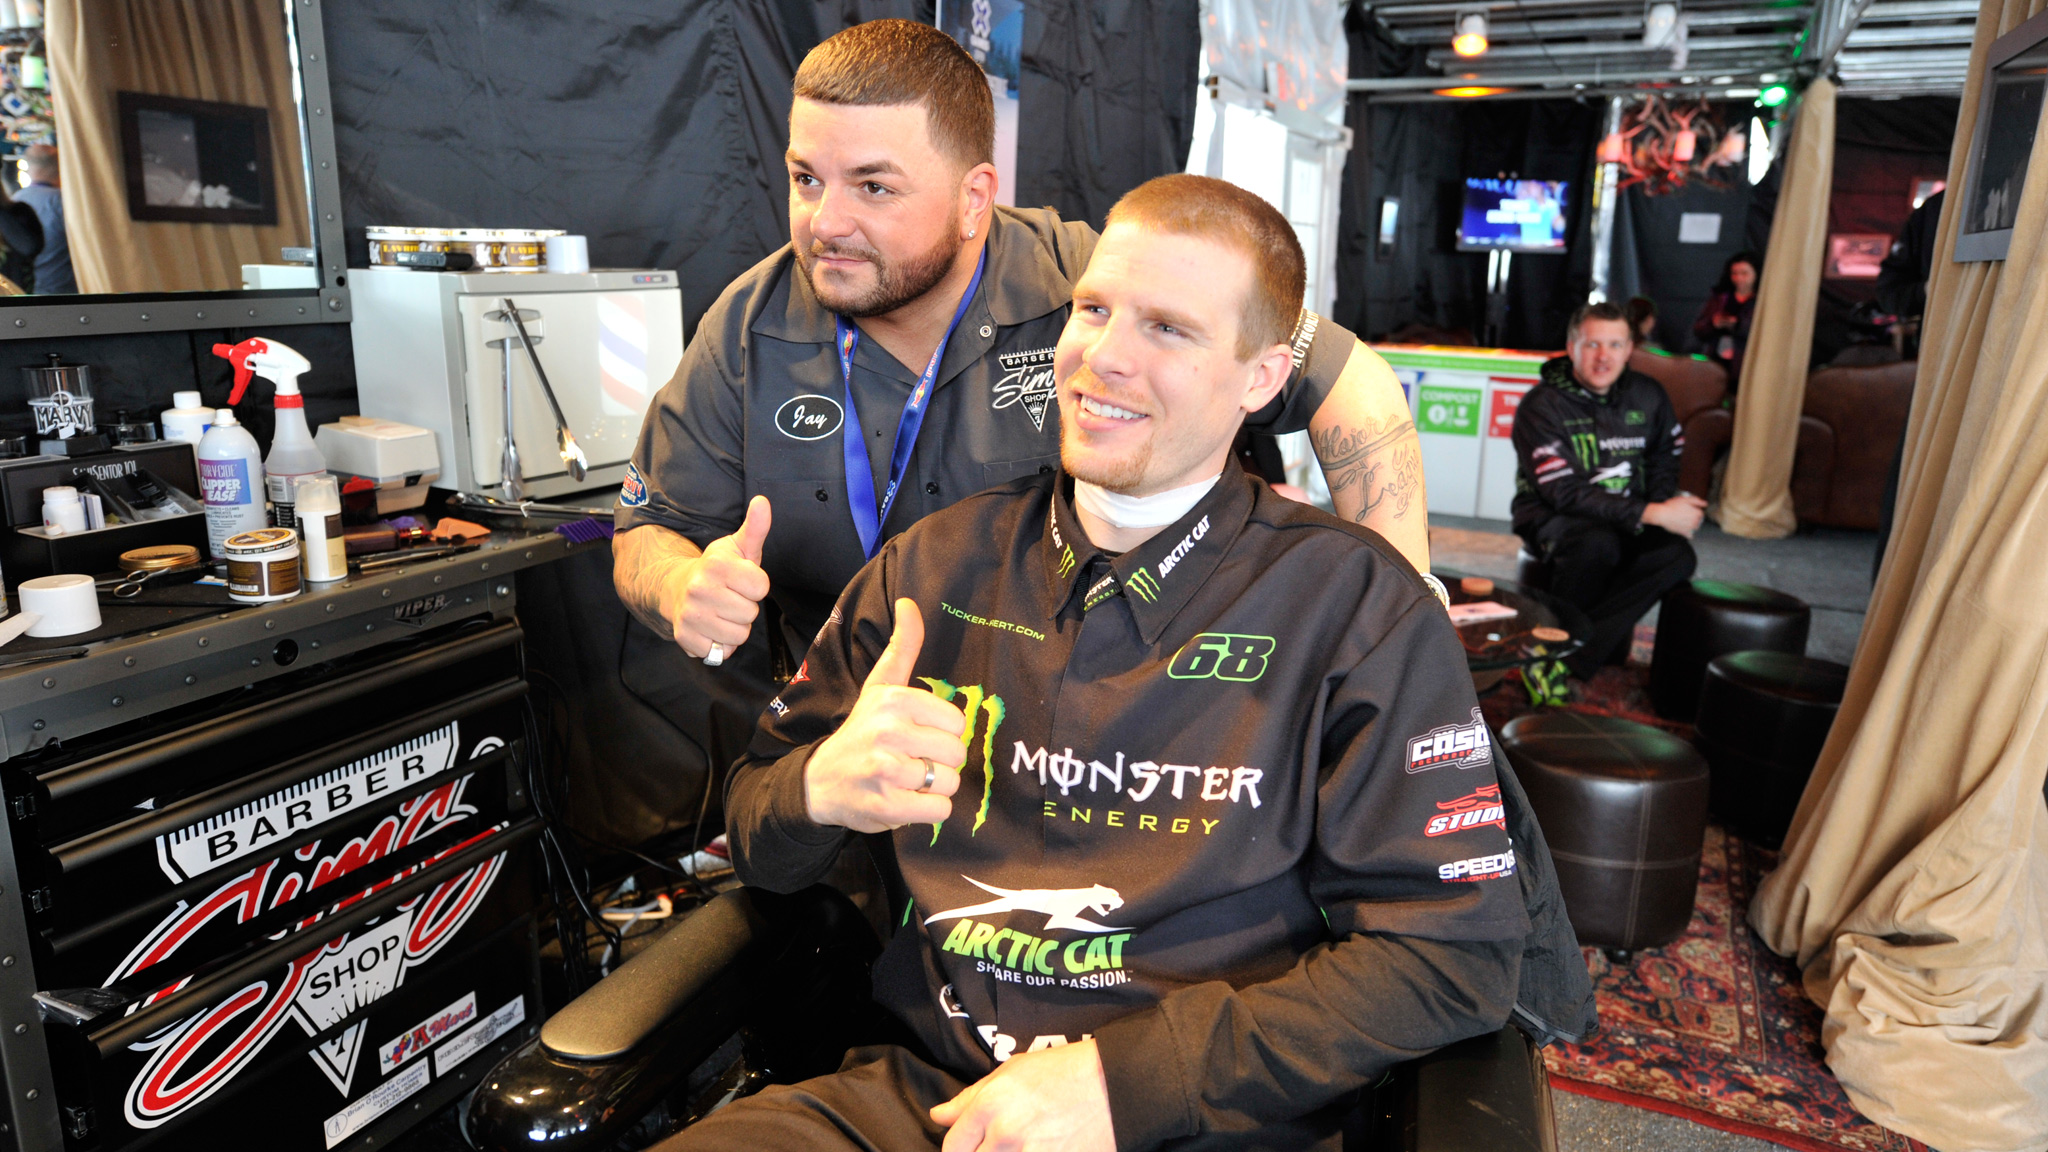 Jason Raposo (L) gave SnoCross rider Tucker Hibbert (R) some clean lines at Uncle Jack's Parlor at X Games Aspen 2013.